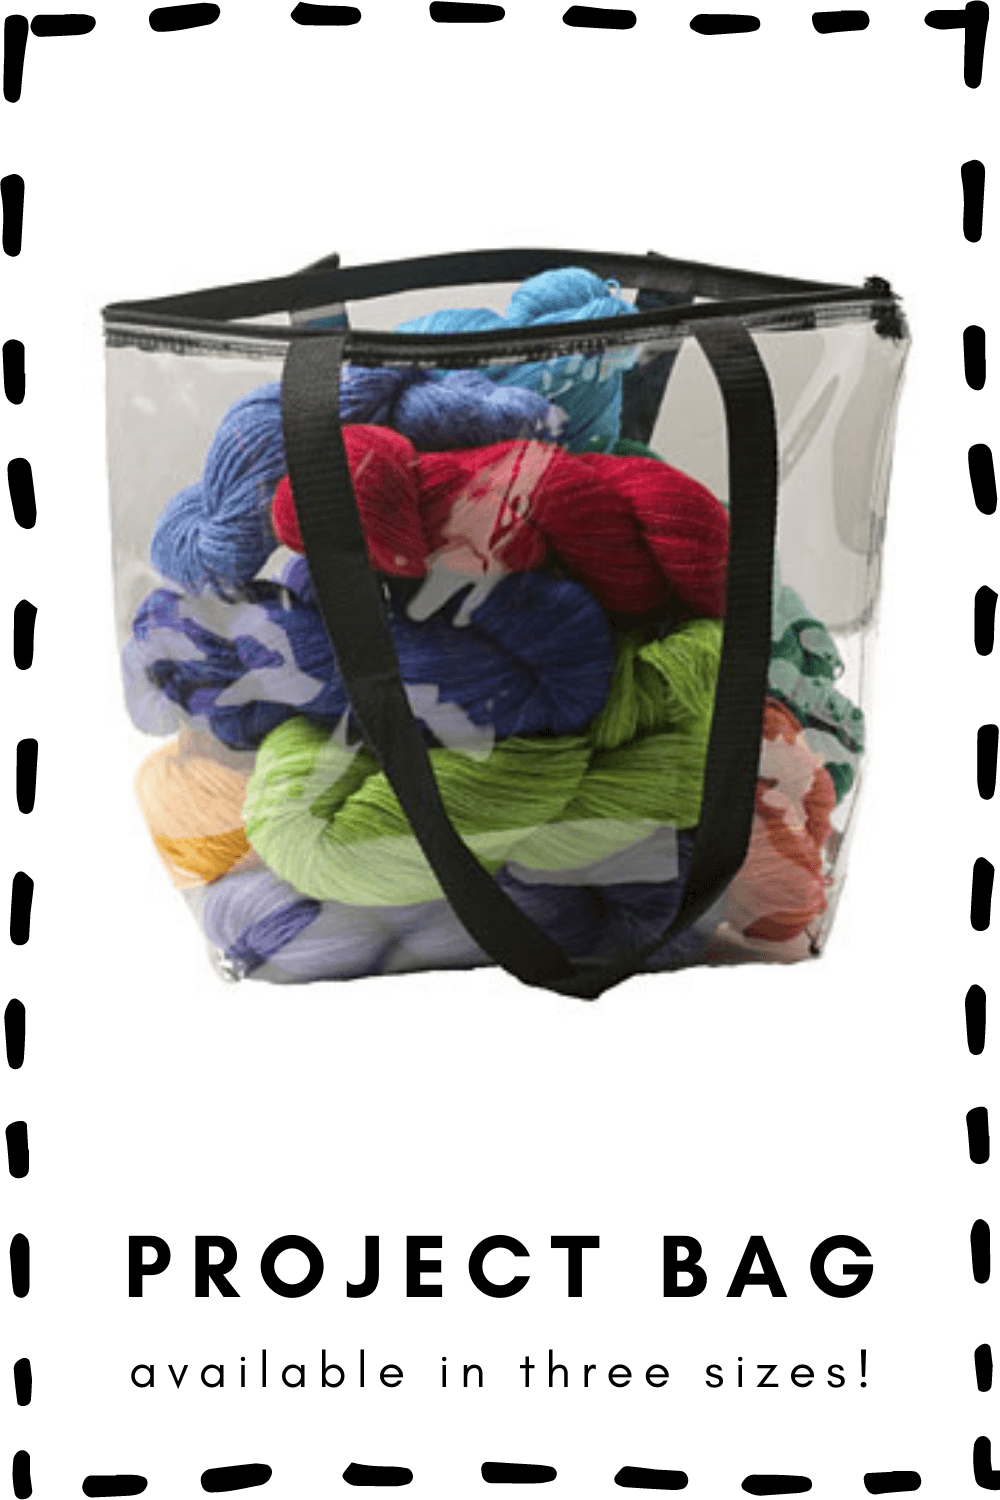 Clear bag for storing yarn or carrying you current knitting project